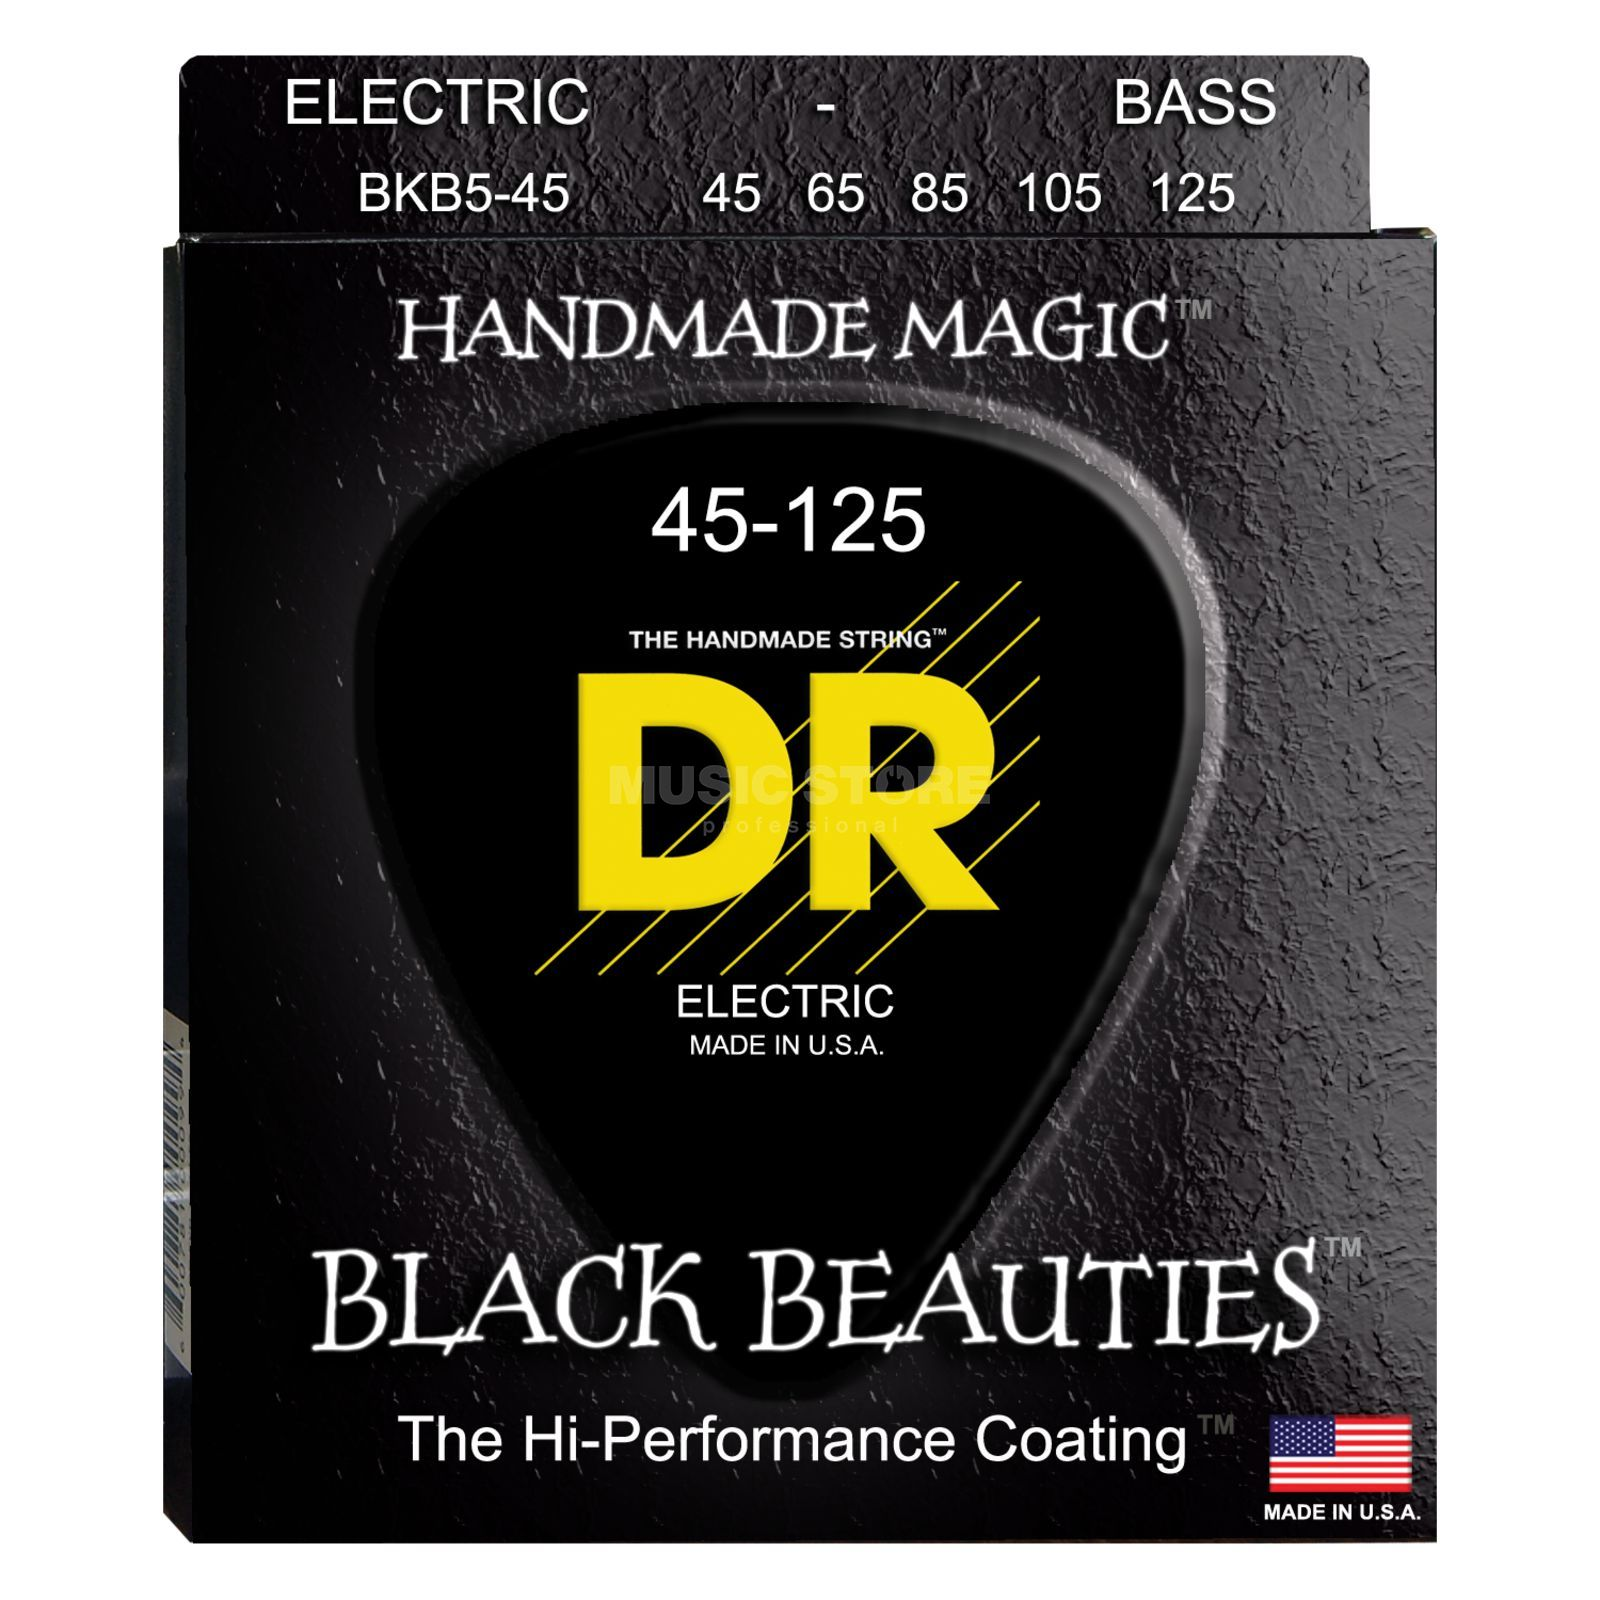 DR 5er Bass 45-125 Extra-Life Black Beauties BKB5-45 Product Image